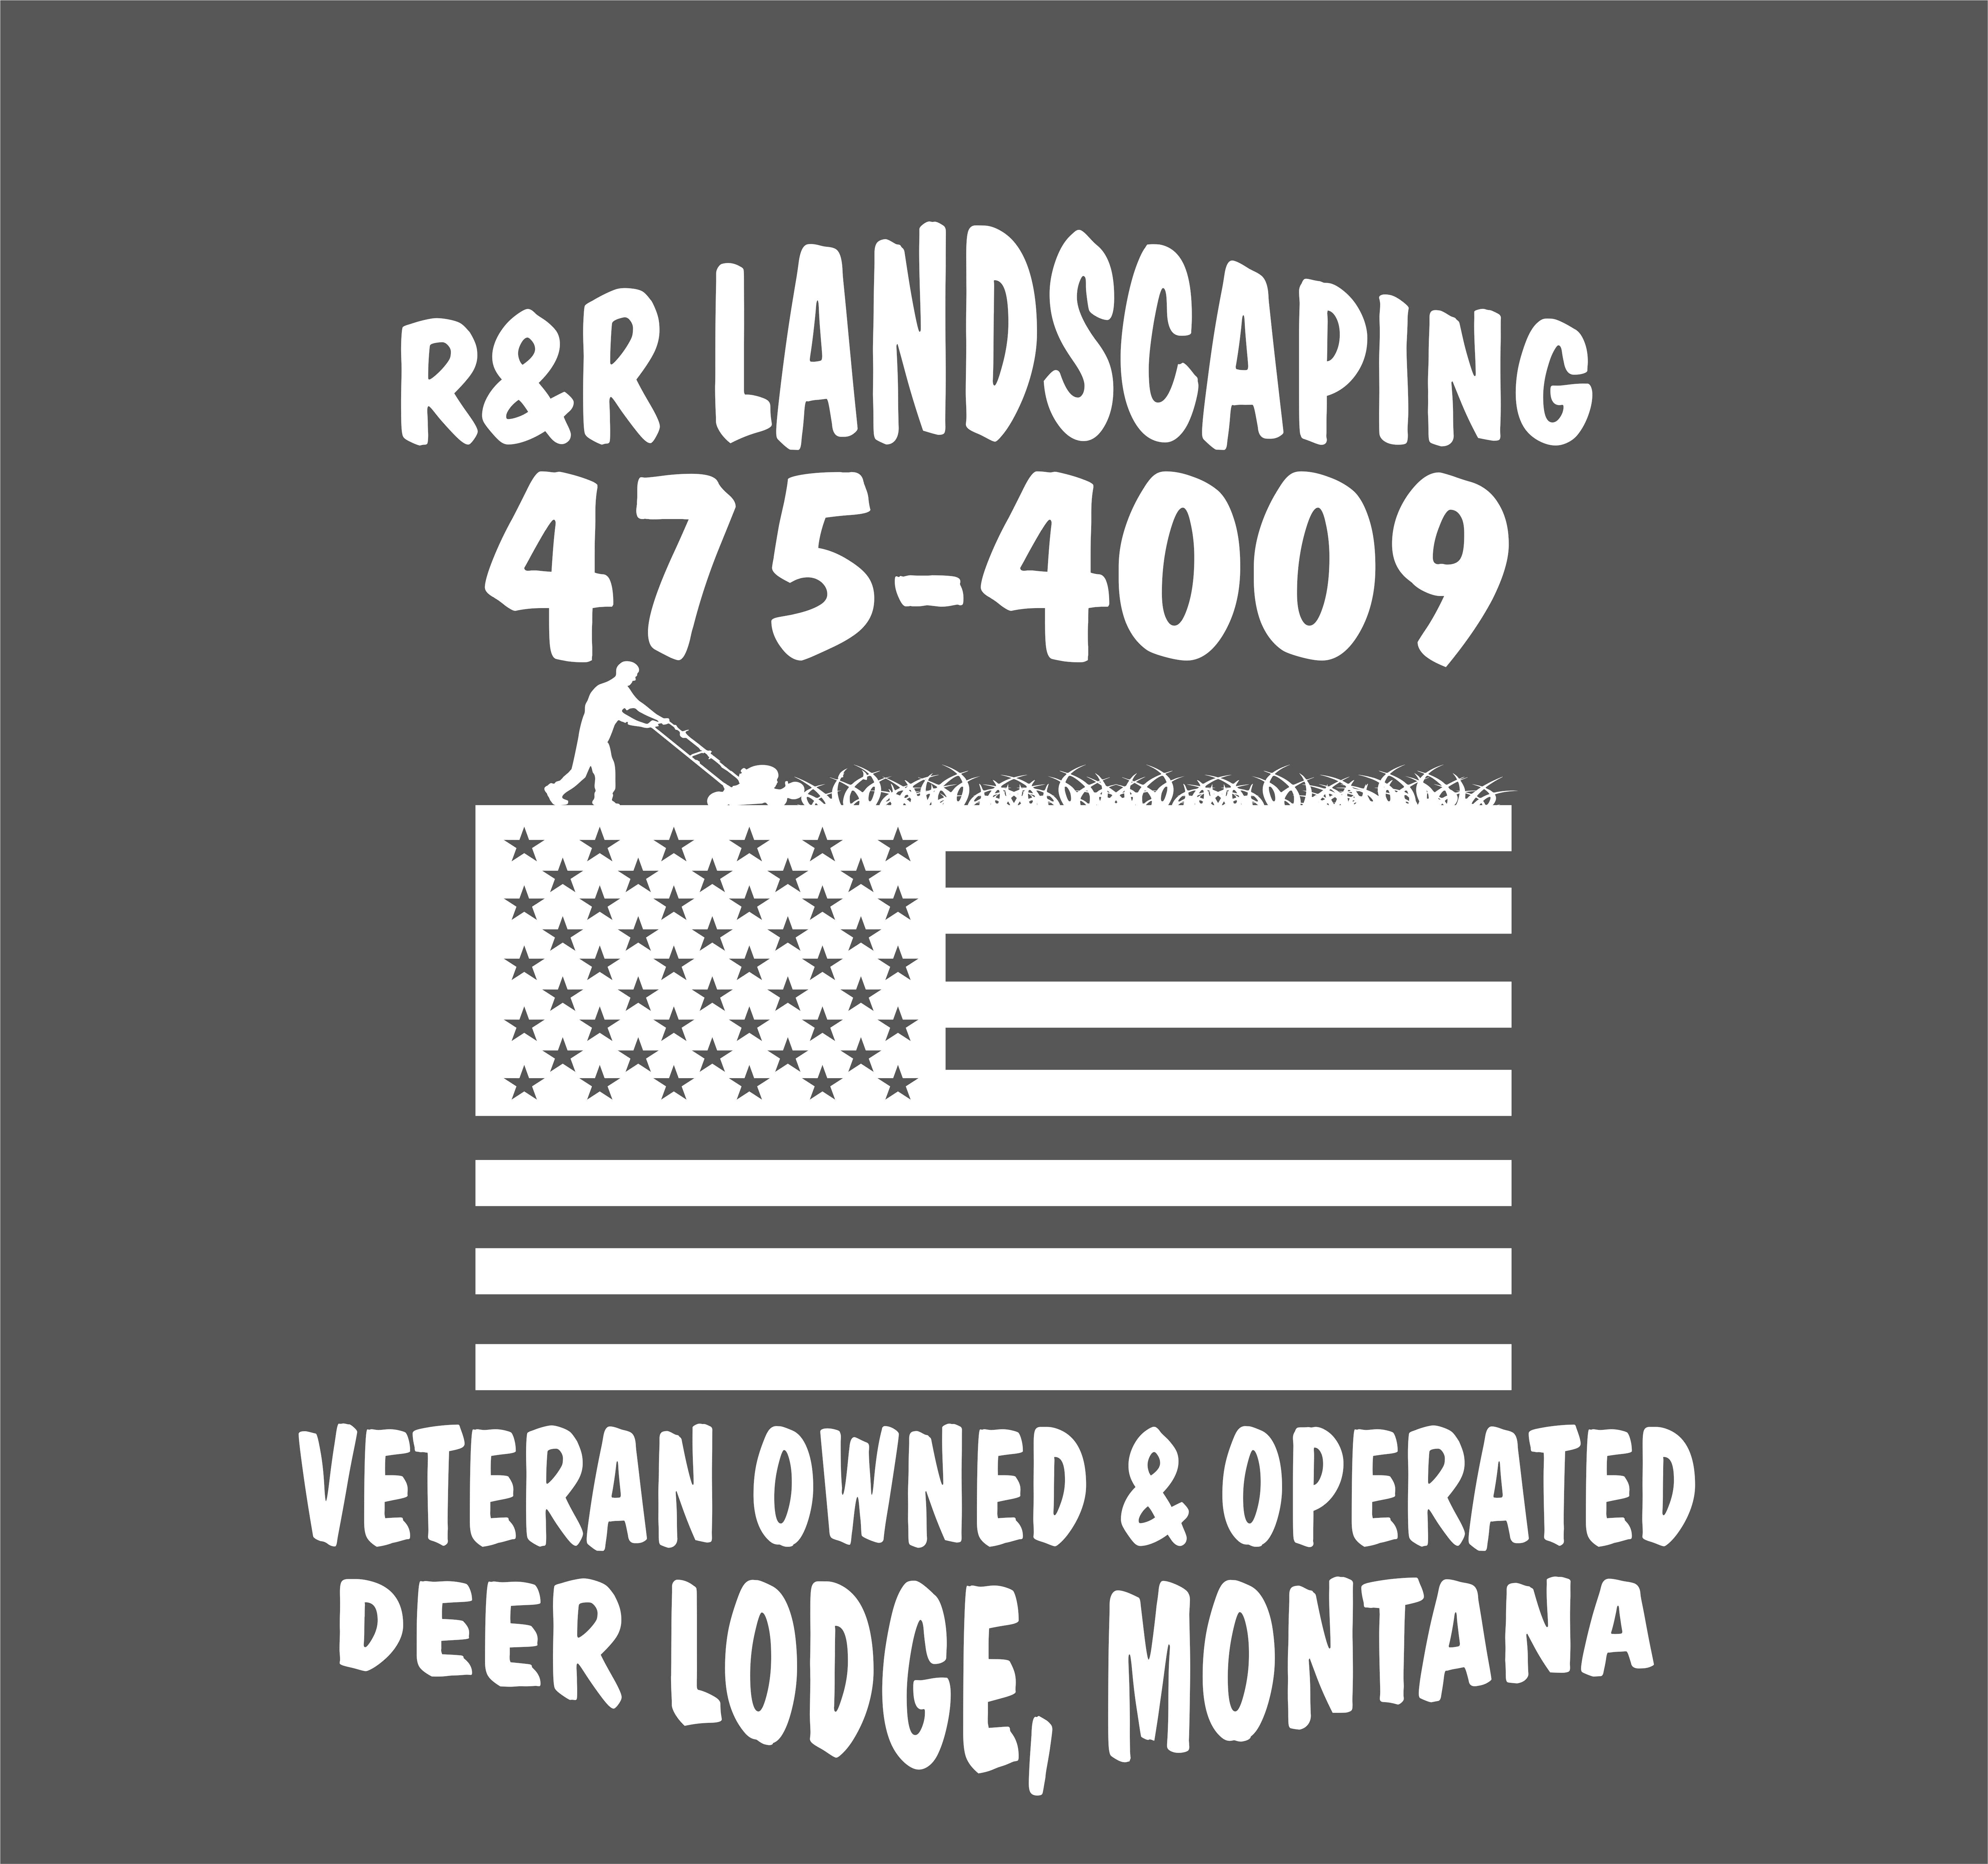 R&R Landscaping